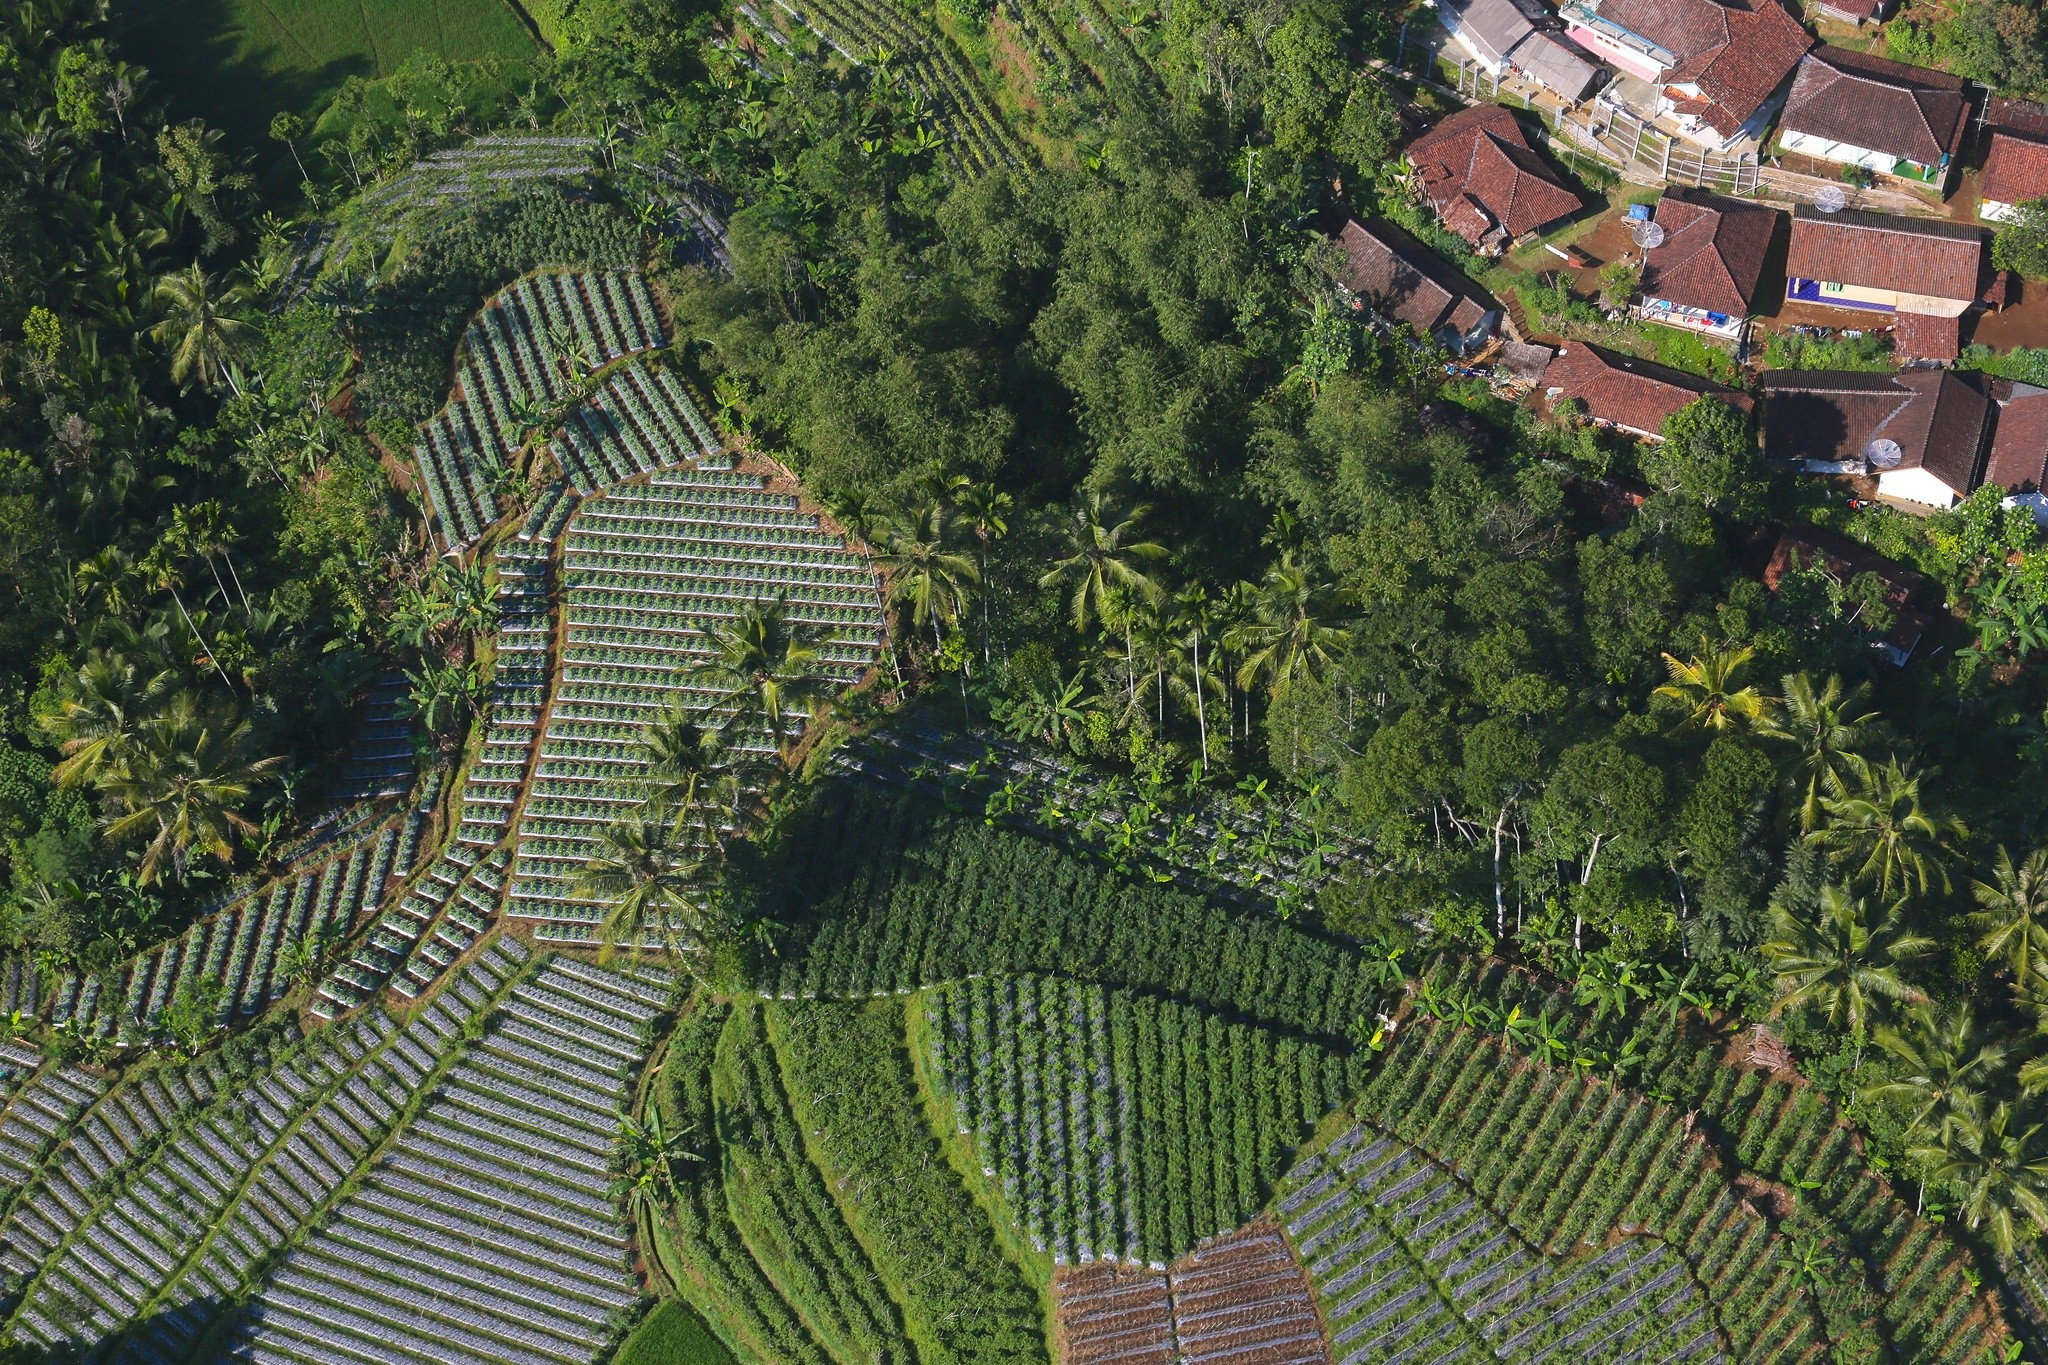 Mount Halimun Landscape in Indonesia: Combining incomes from forestry, agriculture, tourism and ecosystem services